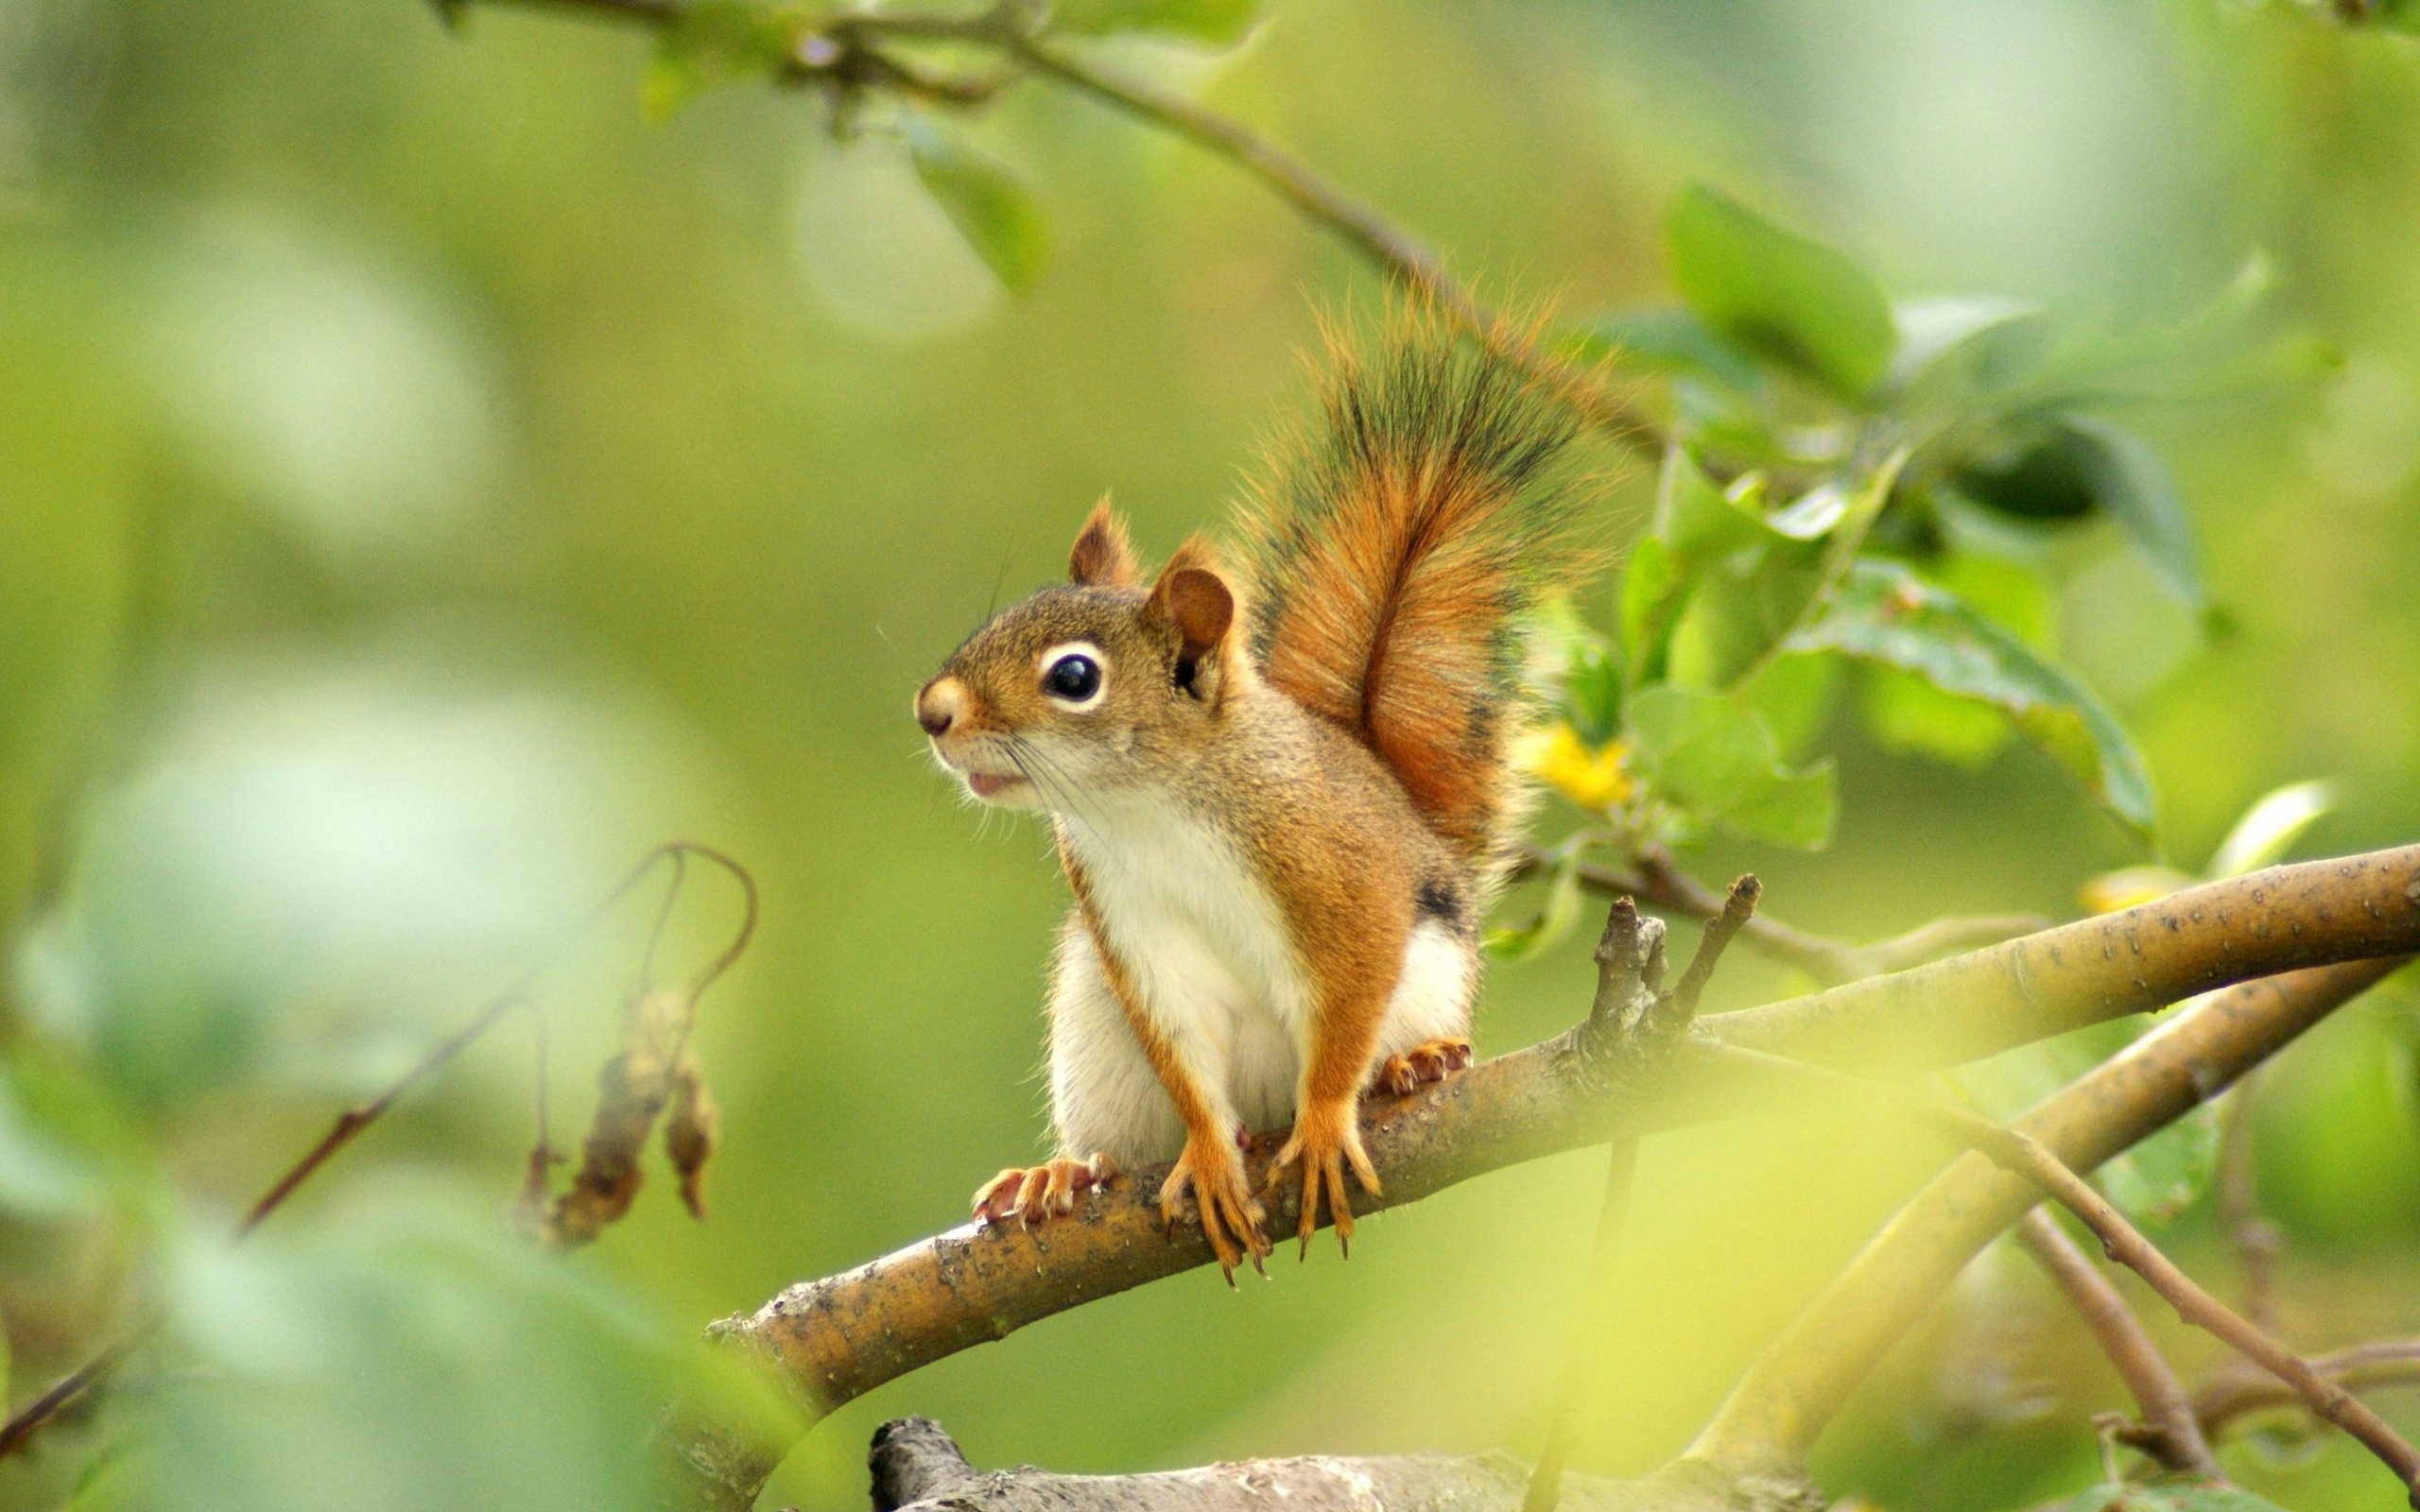 squirrel wallpaper - photo #17